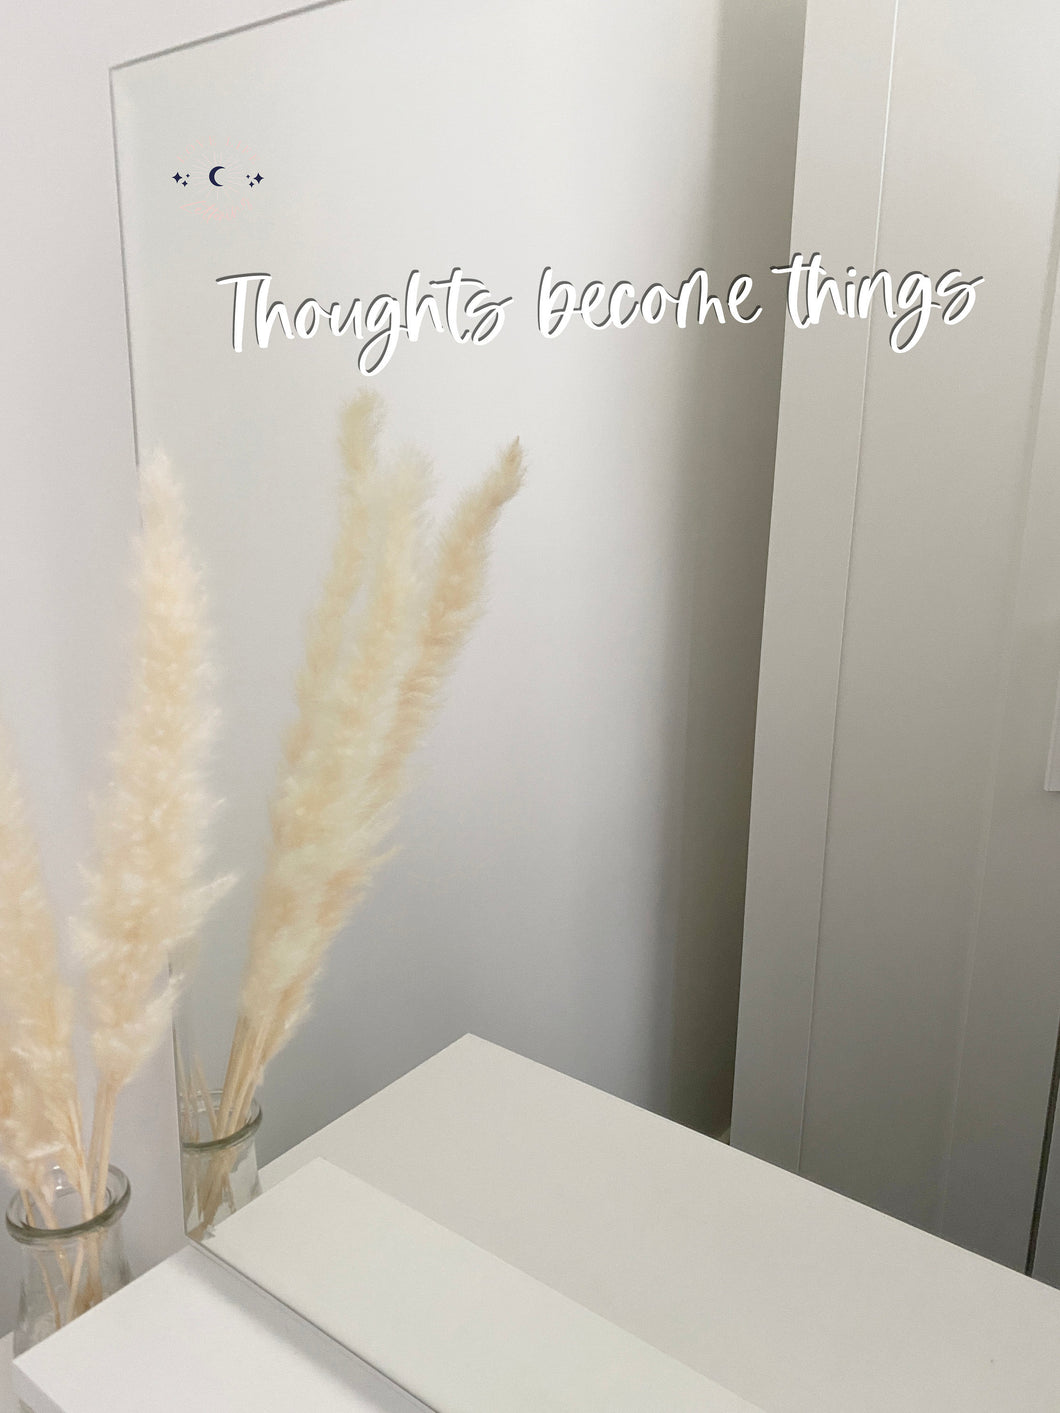 Vinyl Decal Sticker 'Thoughts become things' Mirror Mantra // Affirmation decal, perfect morning reminder to help visualise or manifest